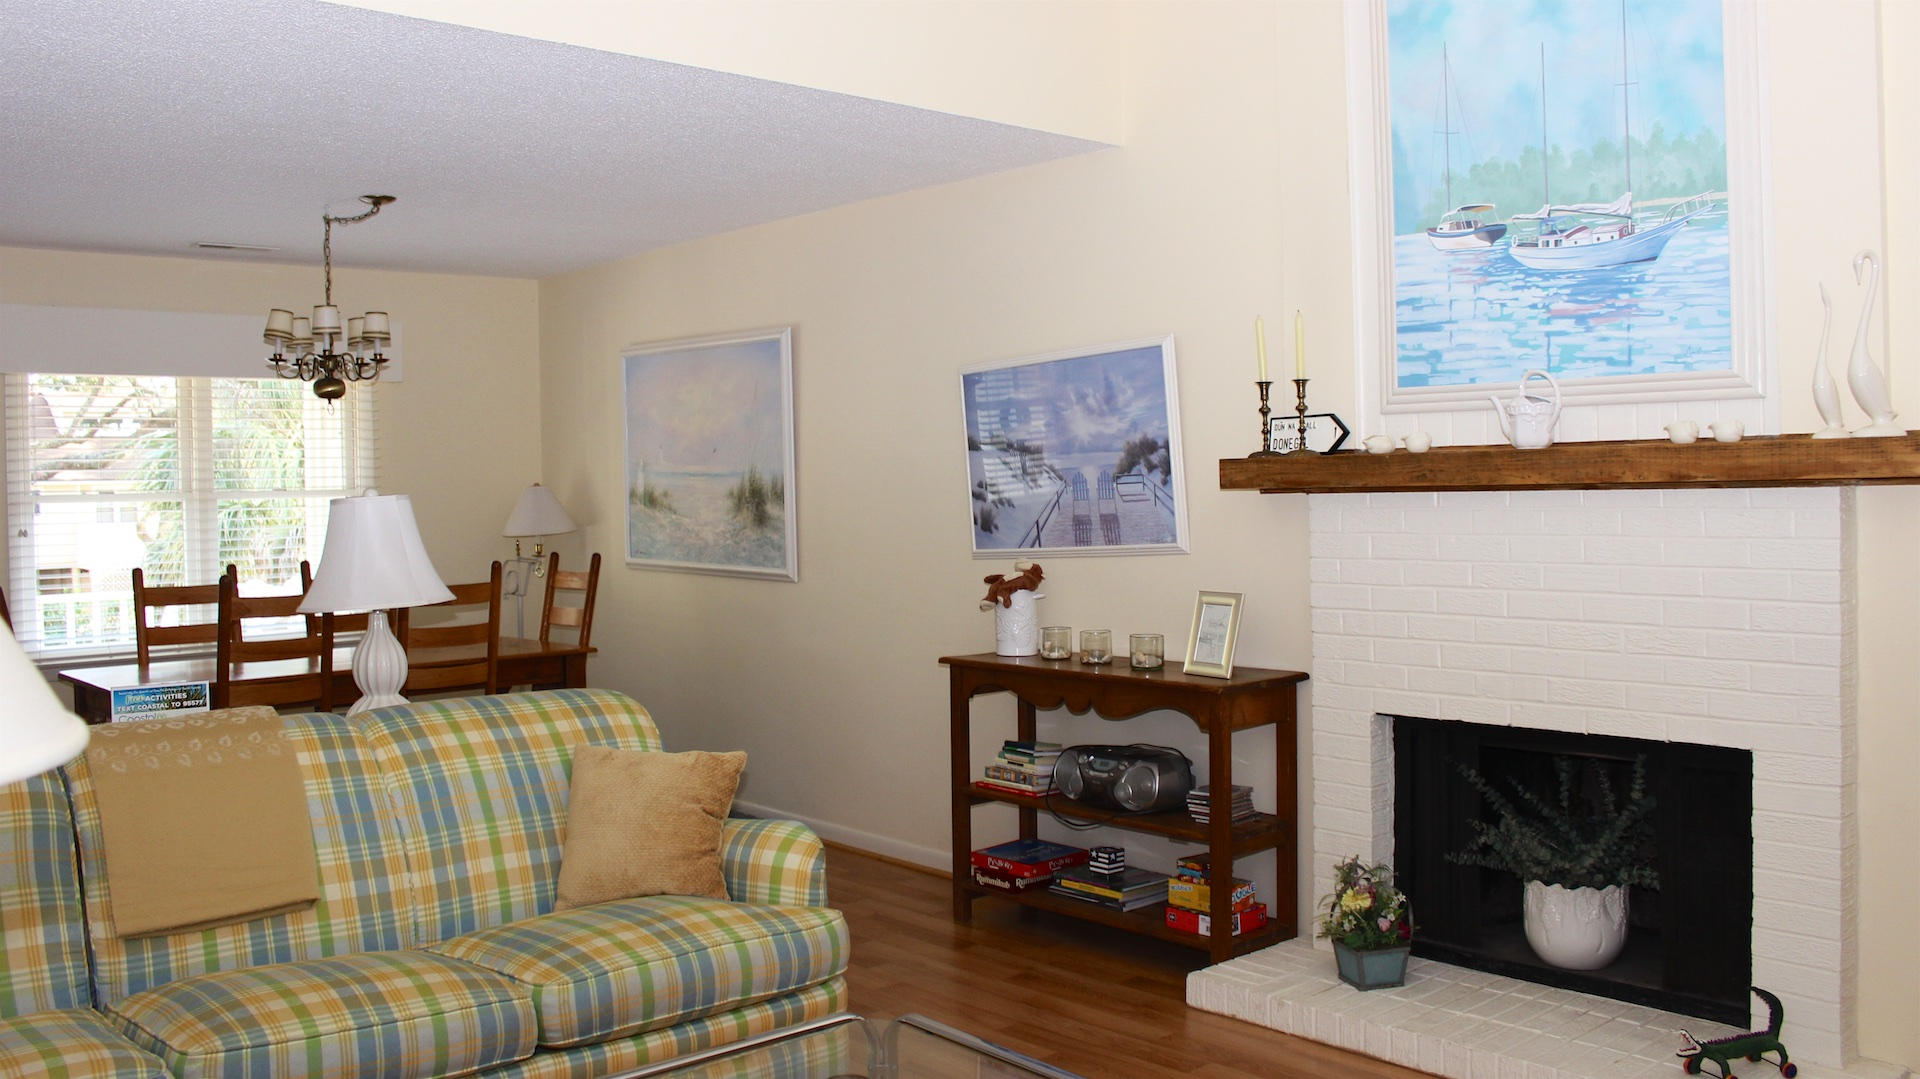 You will enjoy catching up with your family and friends during your Seabrook visit.